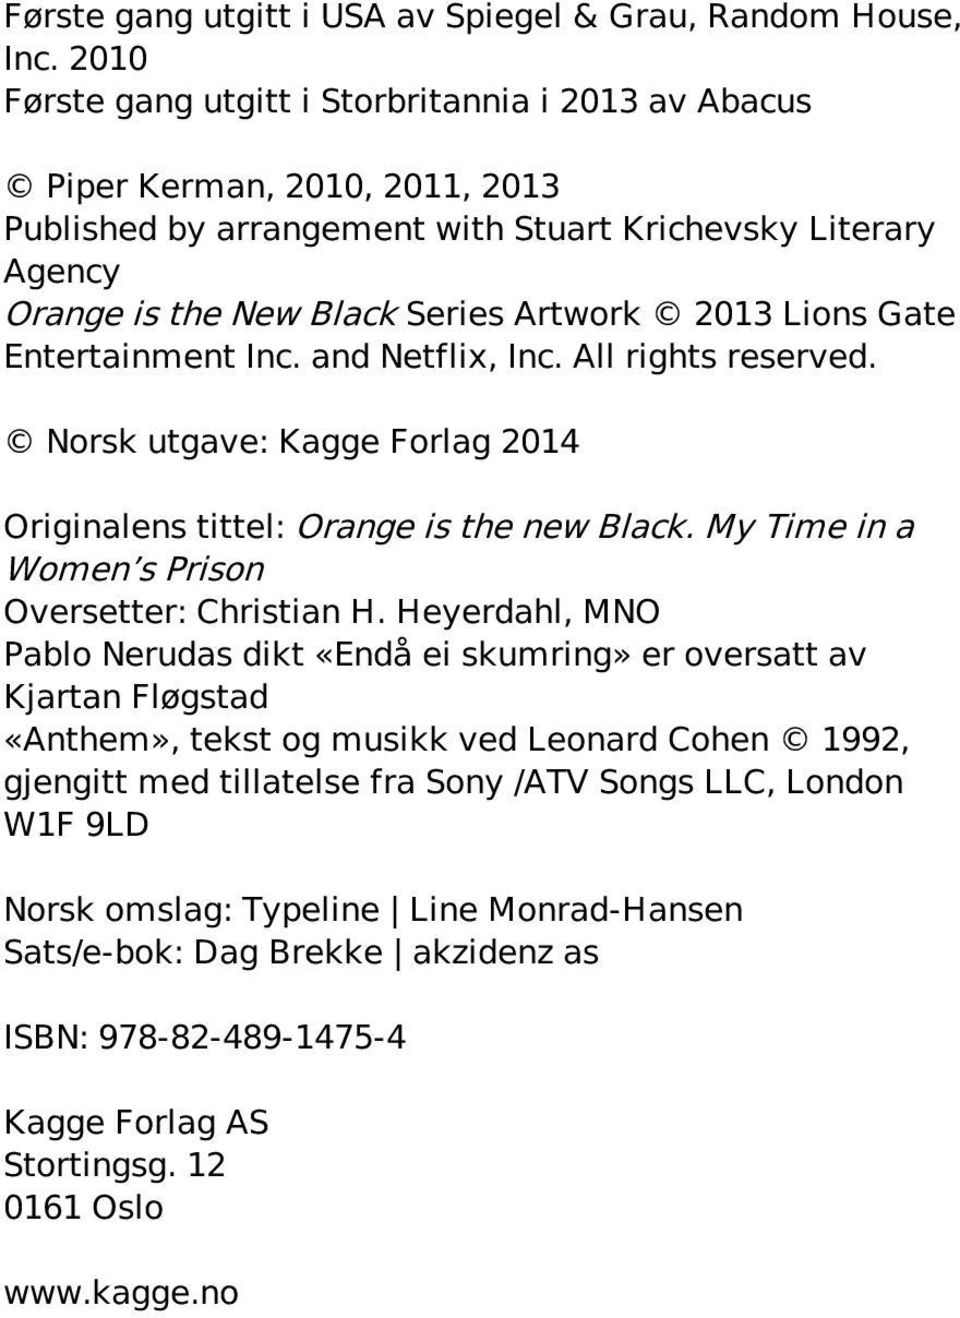 Lions Gate Entertainment Inc. and Netflix, Inc. All rights reserved. Norsk utgave: Kagge Forlag 2014 Originalens tittel: Orange is the new Black. My Time in a Women s Prison Oversetter: Christian H.